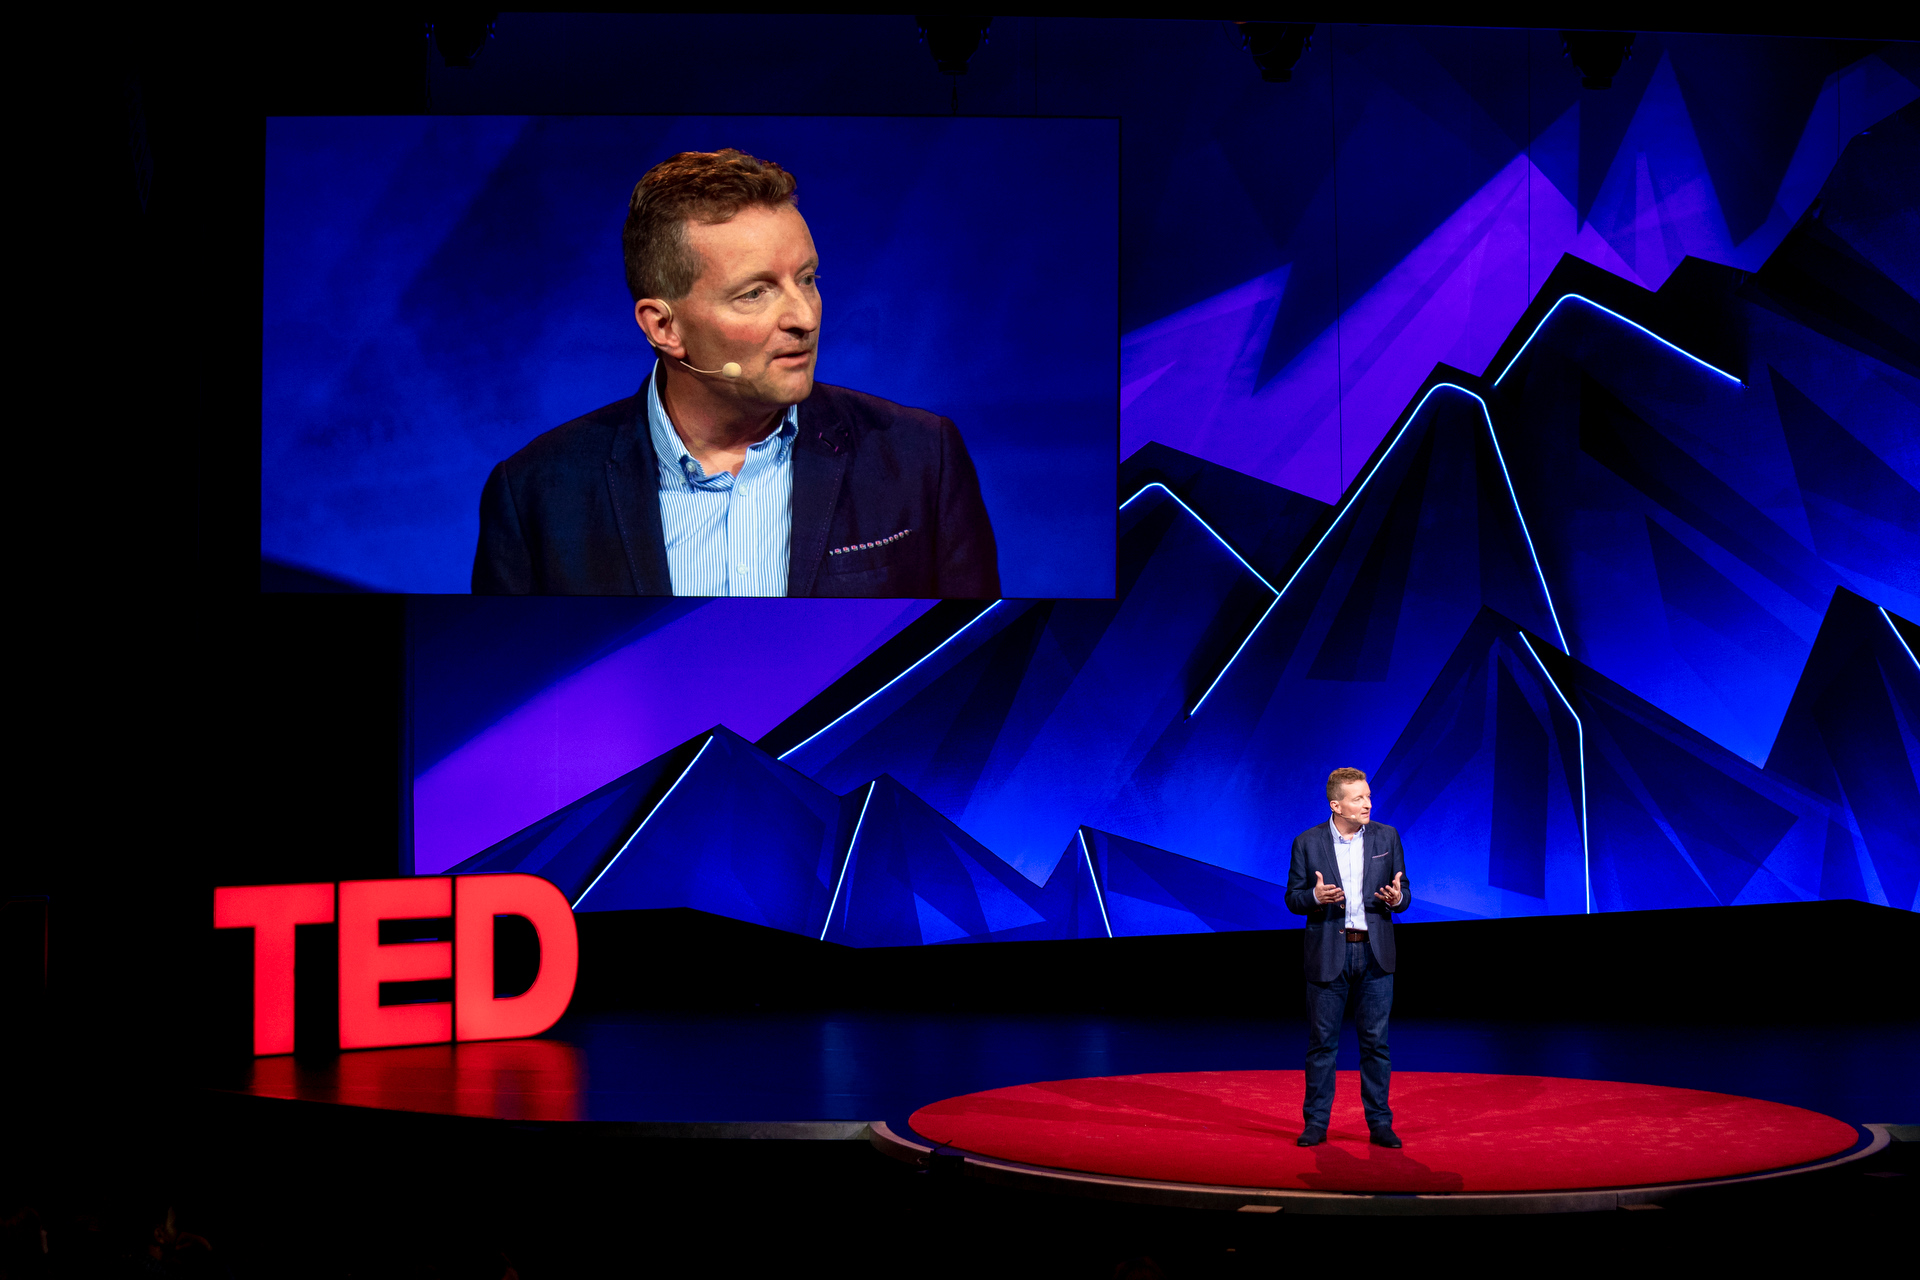 Howard Taylor at TED Summit 2019